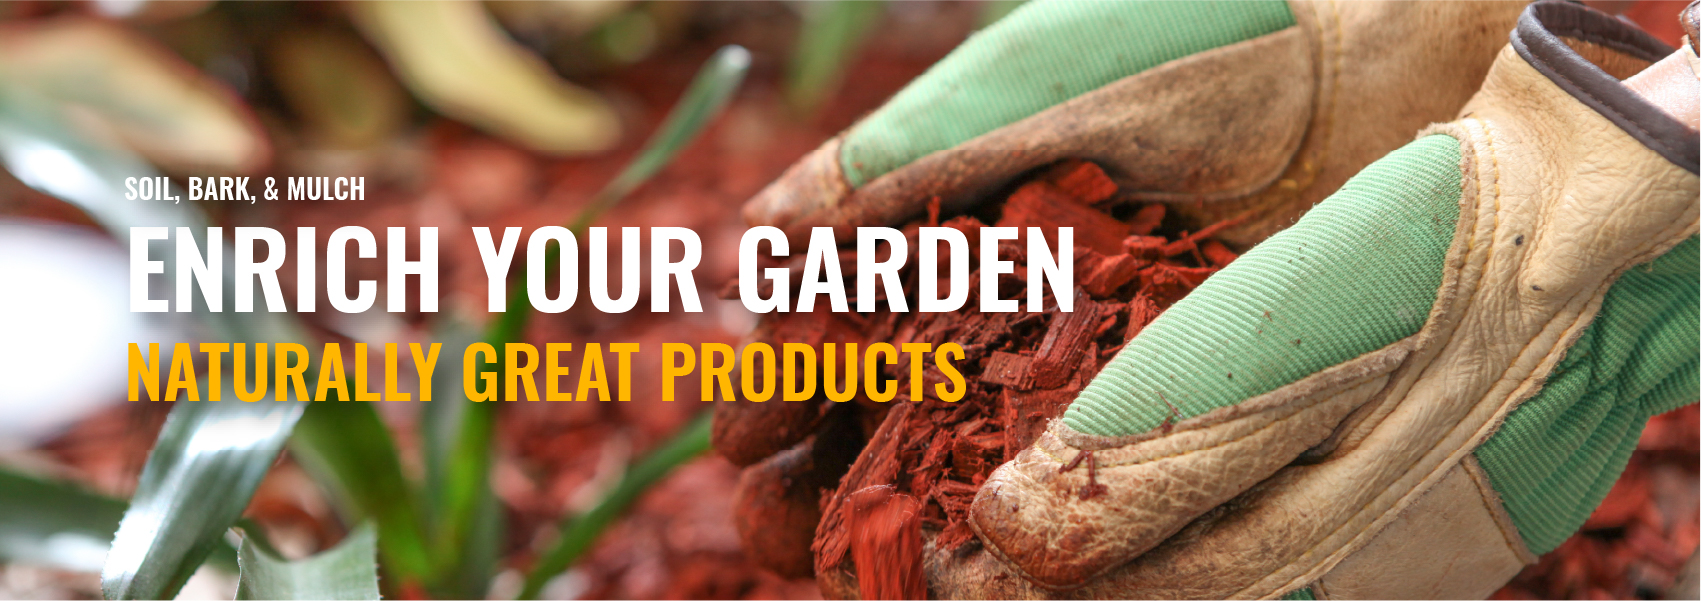 Rockland soil, bark, and mulch products banner.